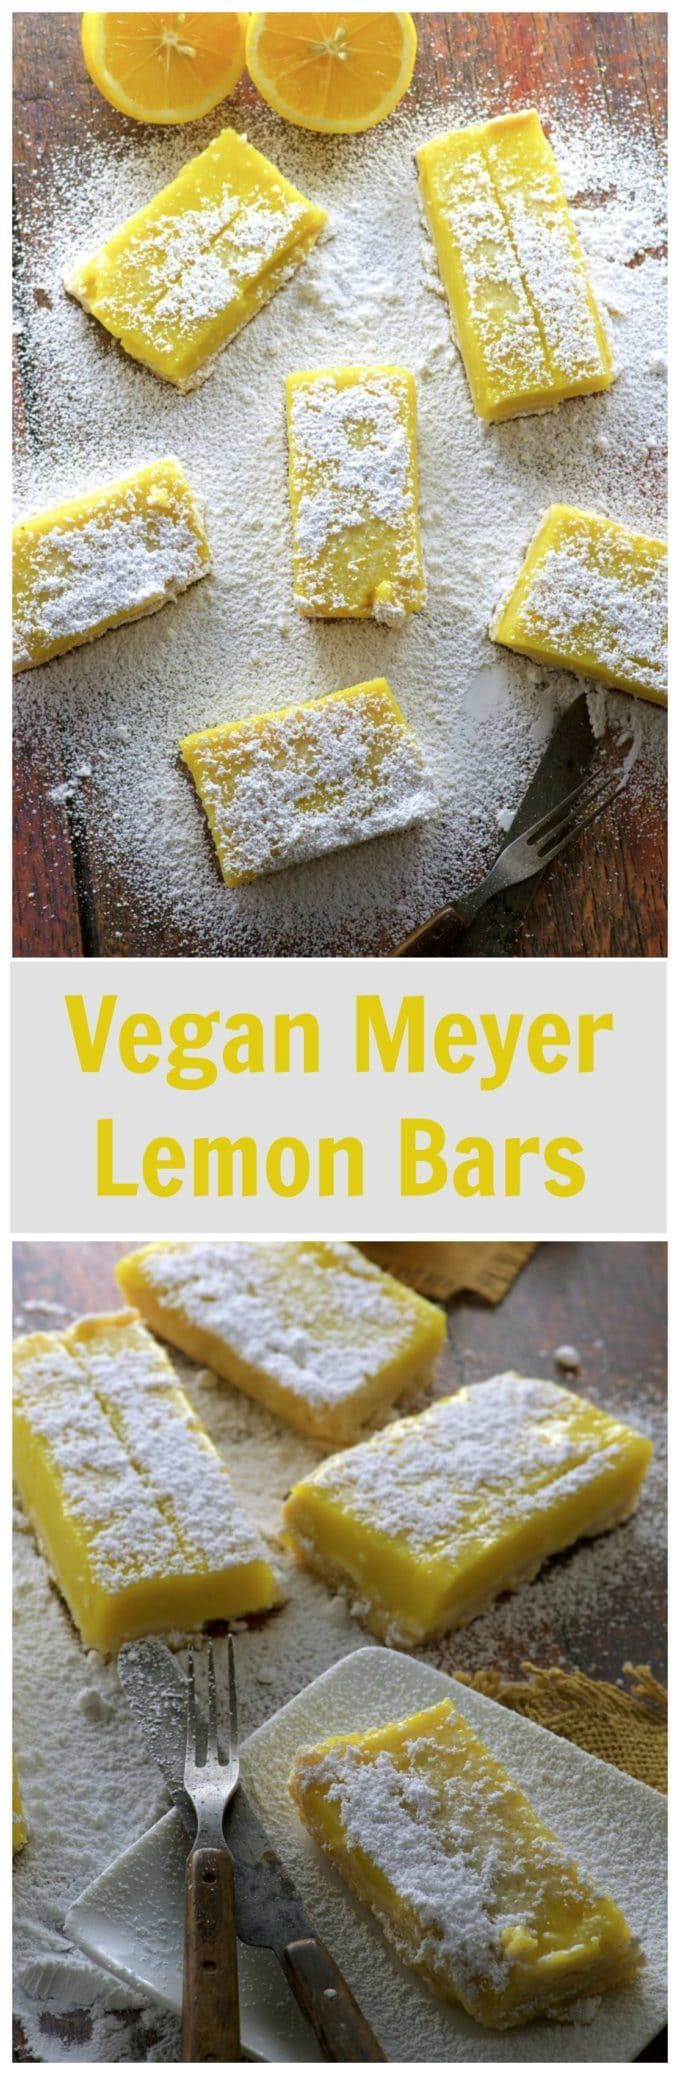 Yes, we  have these awesome Vegan Meyer Lemon Bars…Edit description